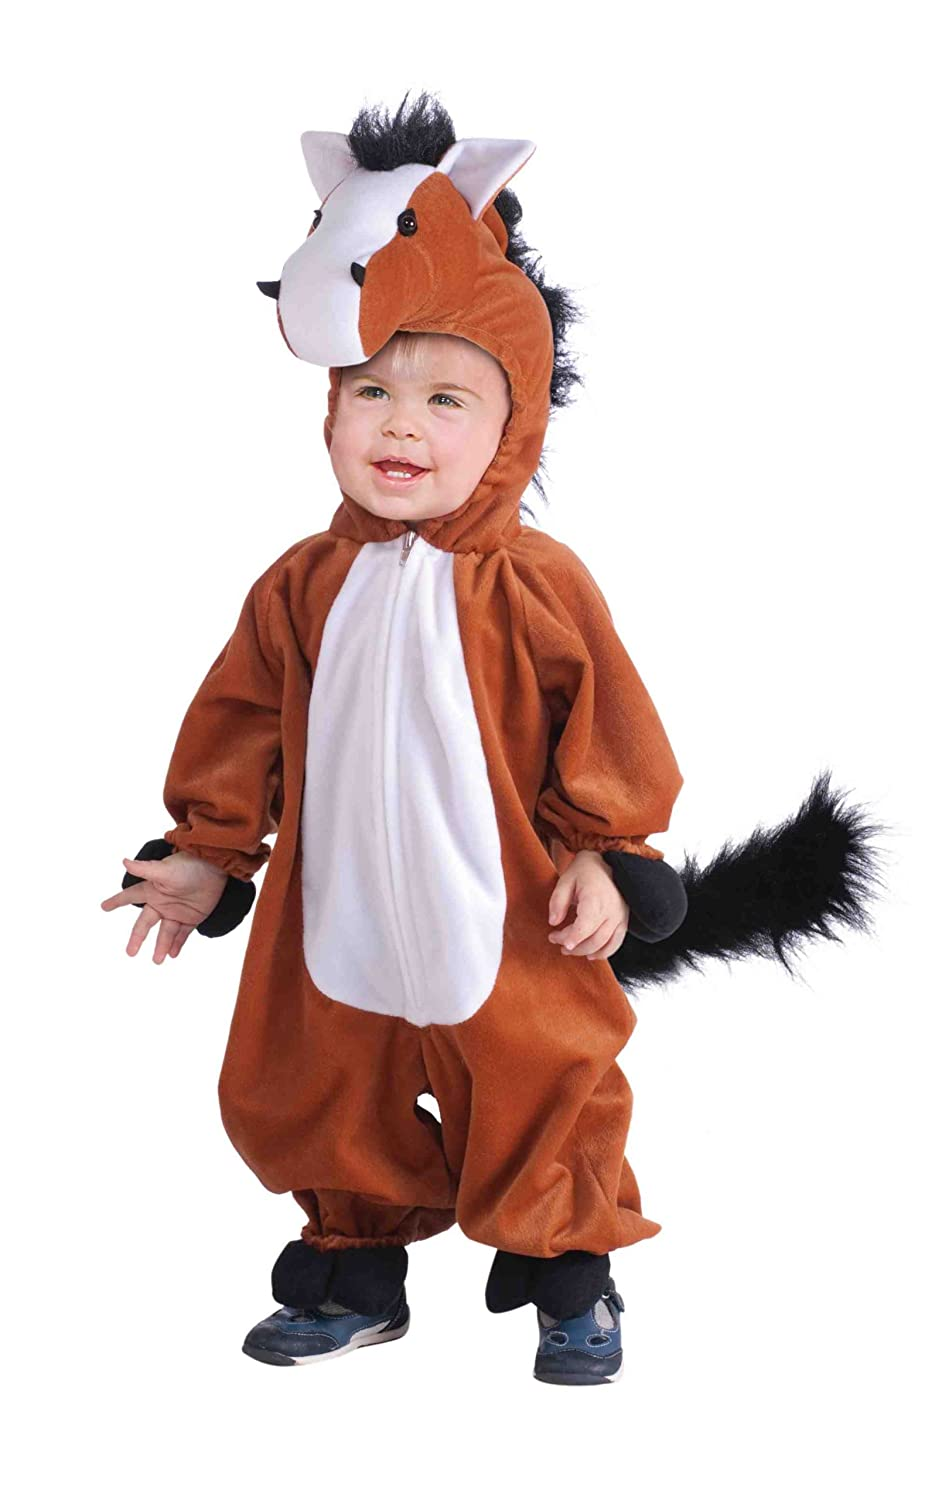 amazoncom forum novelties horse costume includes a jumpsuit with attached hood medium size toys games